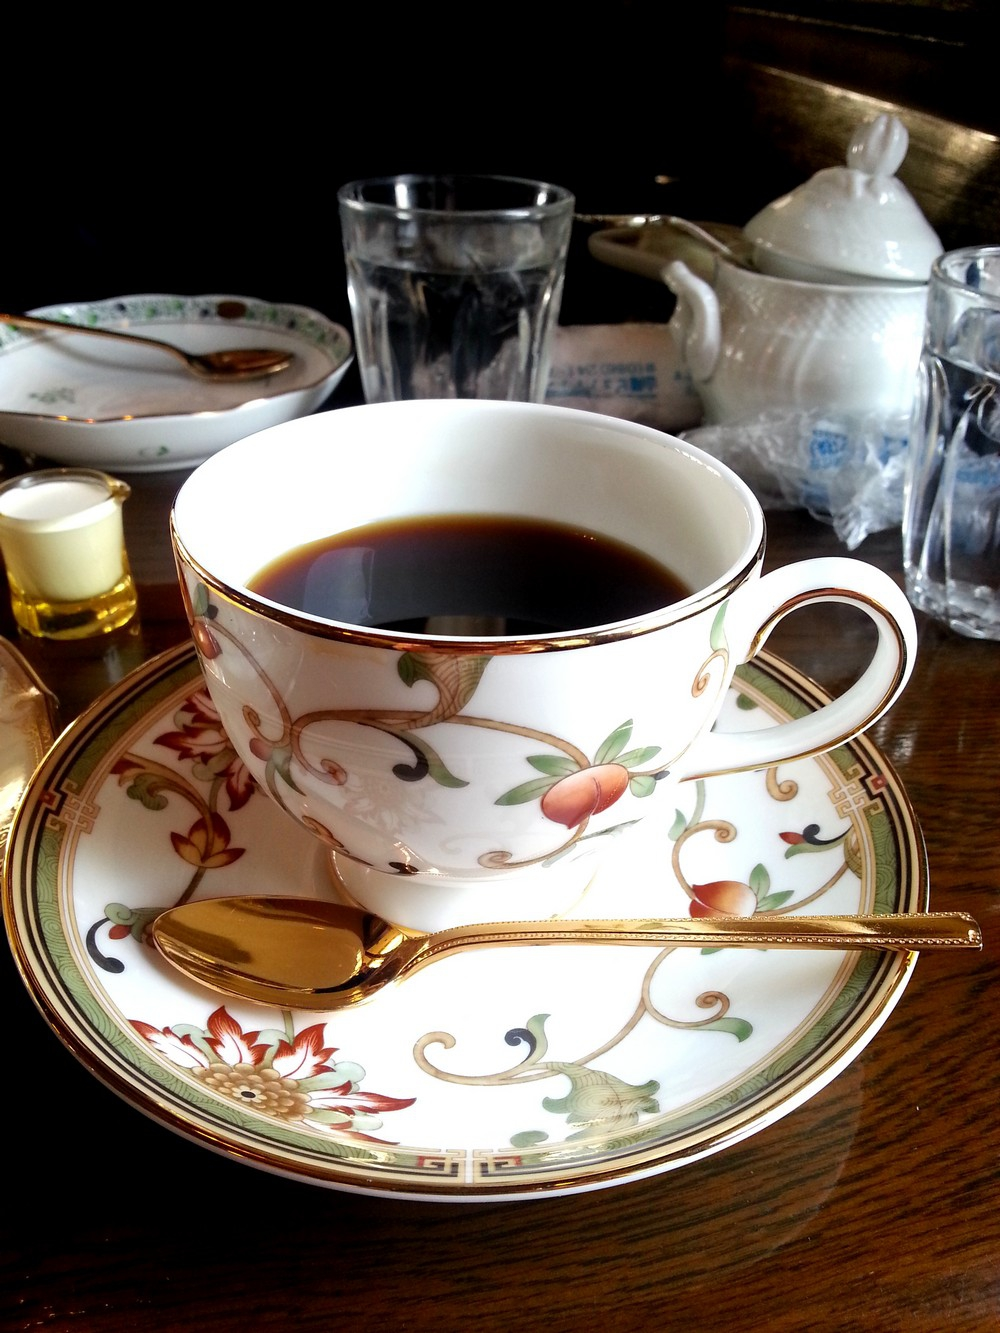 Honky Tonk Coffee Shop: Gorgeous cup and saucer